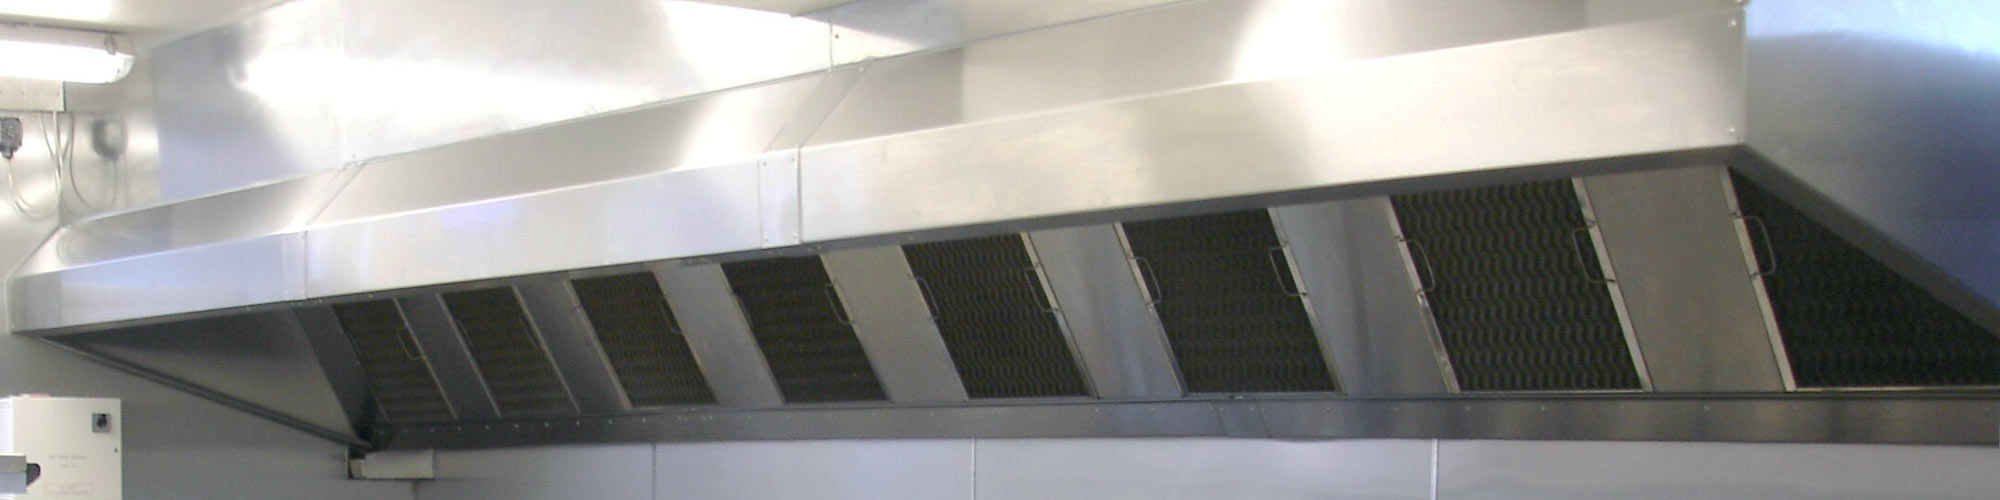 Extract canopy hood commercial kitchen catering & Kitchen extract u0026 ventilation | Far East ????